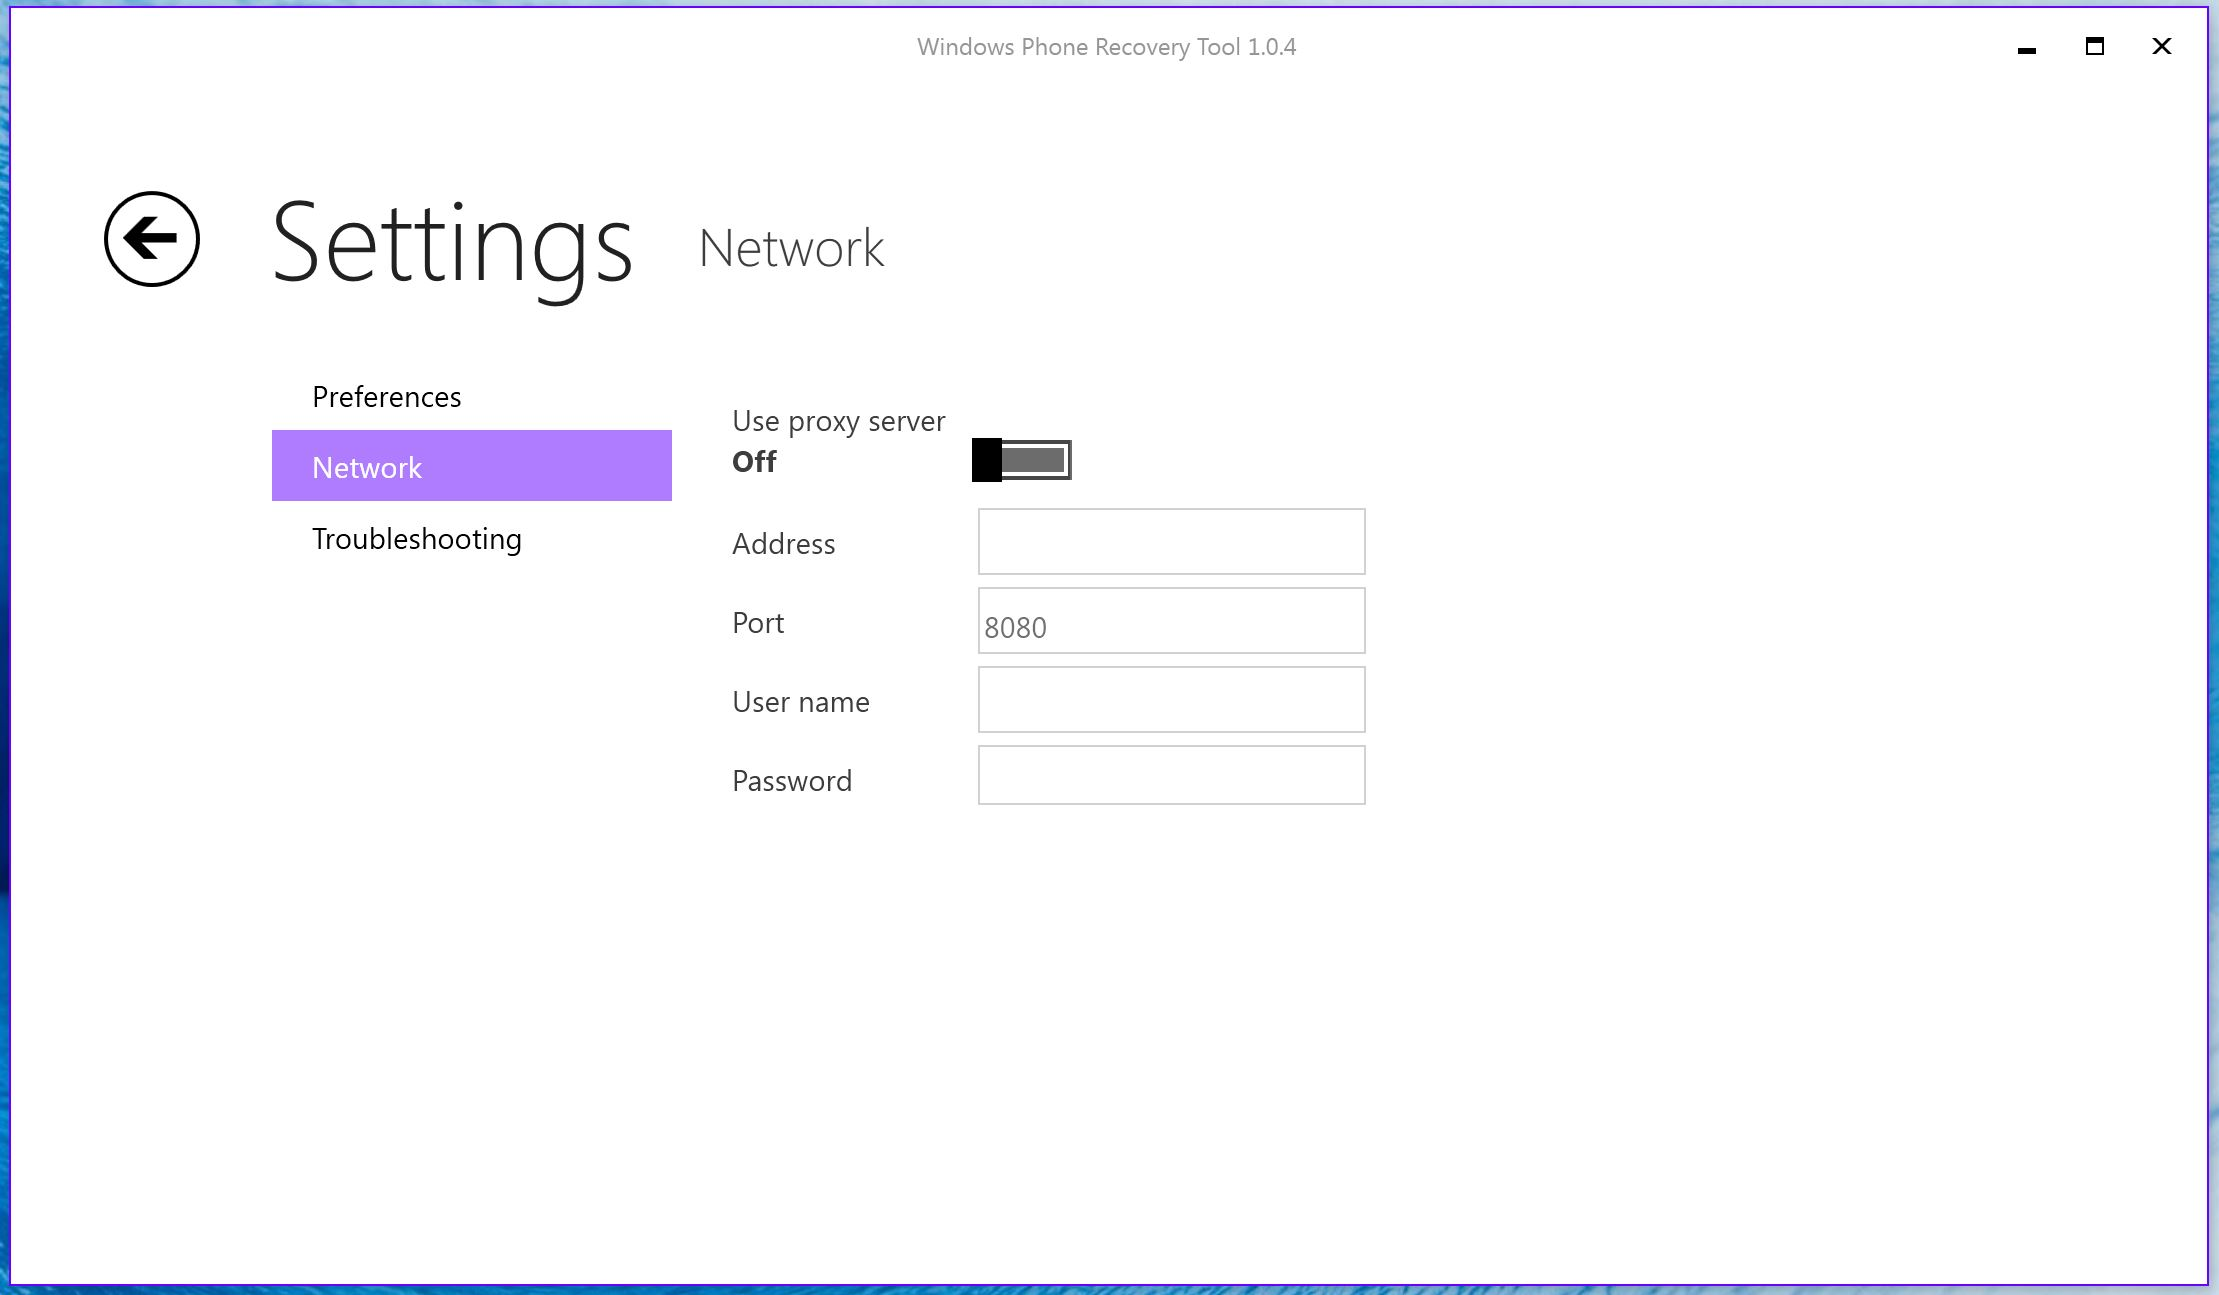 Windows Phone Recovery Tool 3